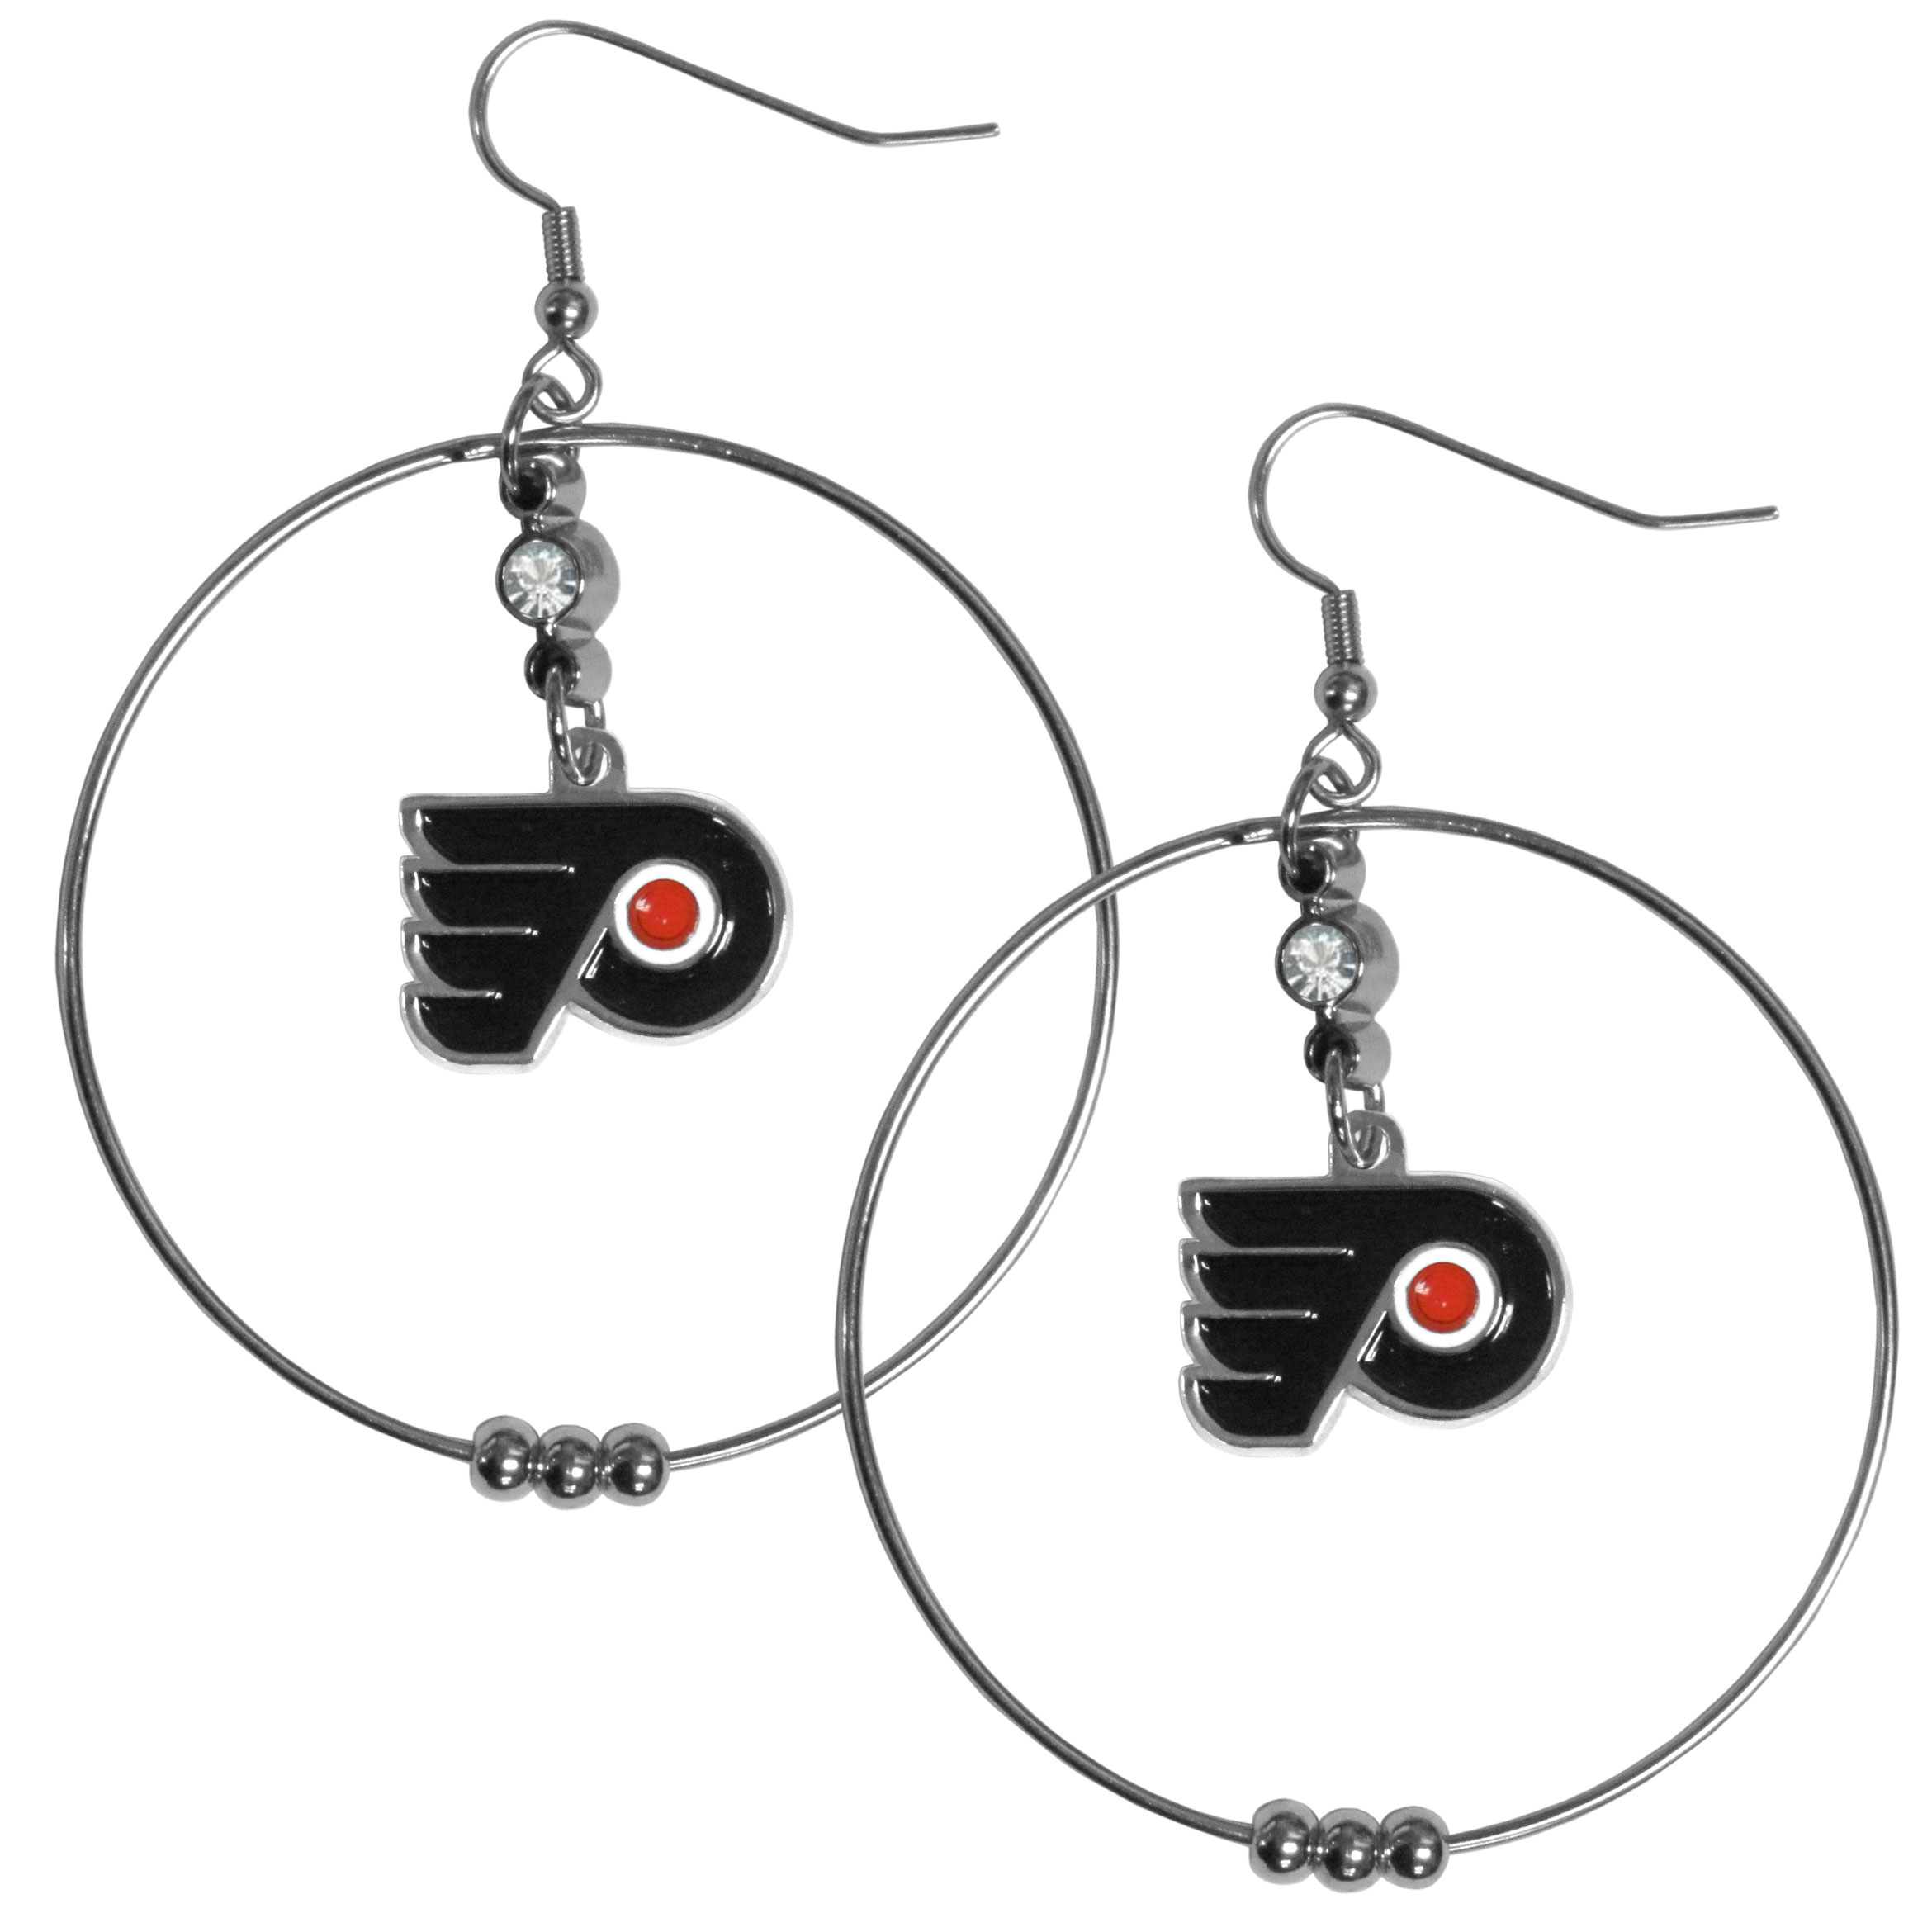 Philadelphia Flyers® 2 Inch Hoop Earrings - Our large hoop earrings have a fully cast and enameled Philadelphia Flyers® charm with enameled detail and a high polish nickel free chrome finish and rhinestone access. Hypoallergenic fishhook posts.